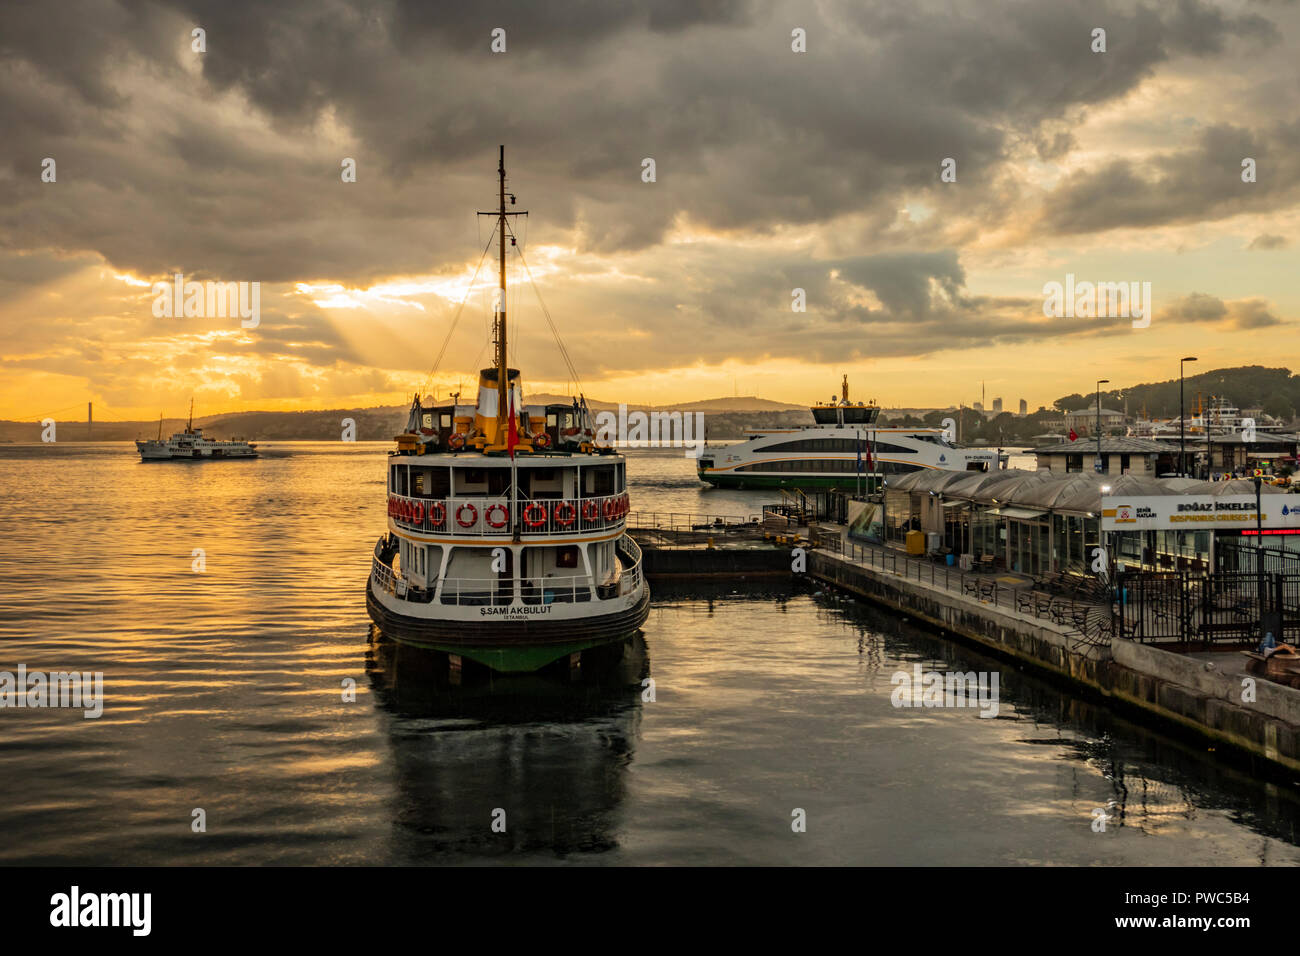 istanbul,Turkey-July 20,2016.cityscape and city lines ferries for passenger transport to asia from europe continent in istanbul - Stock Image